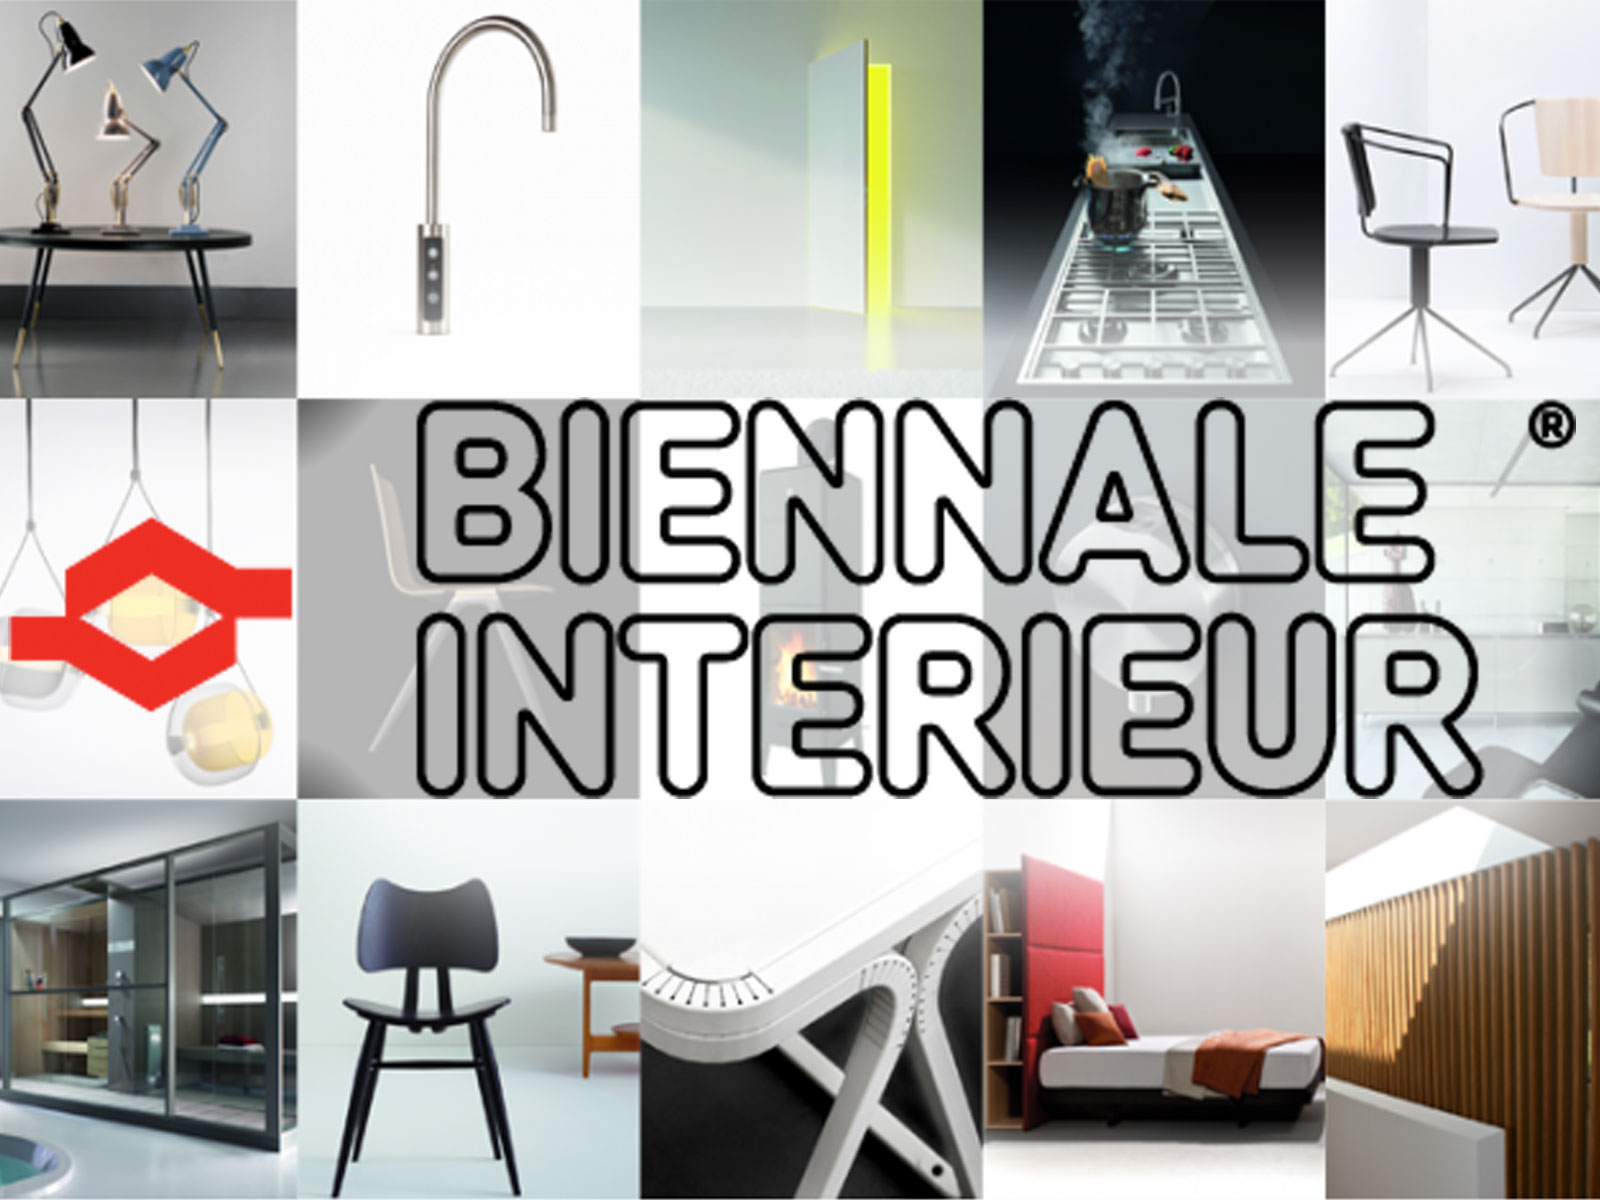 Bi nnale interieur for Biennale interieur